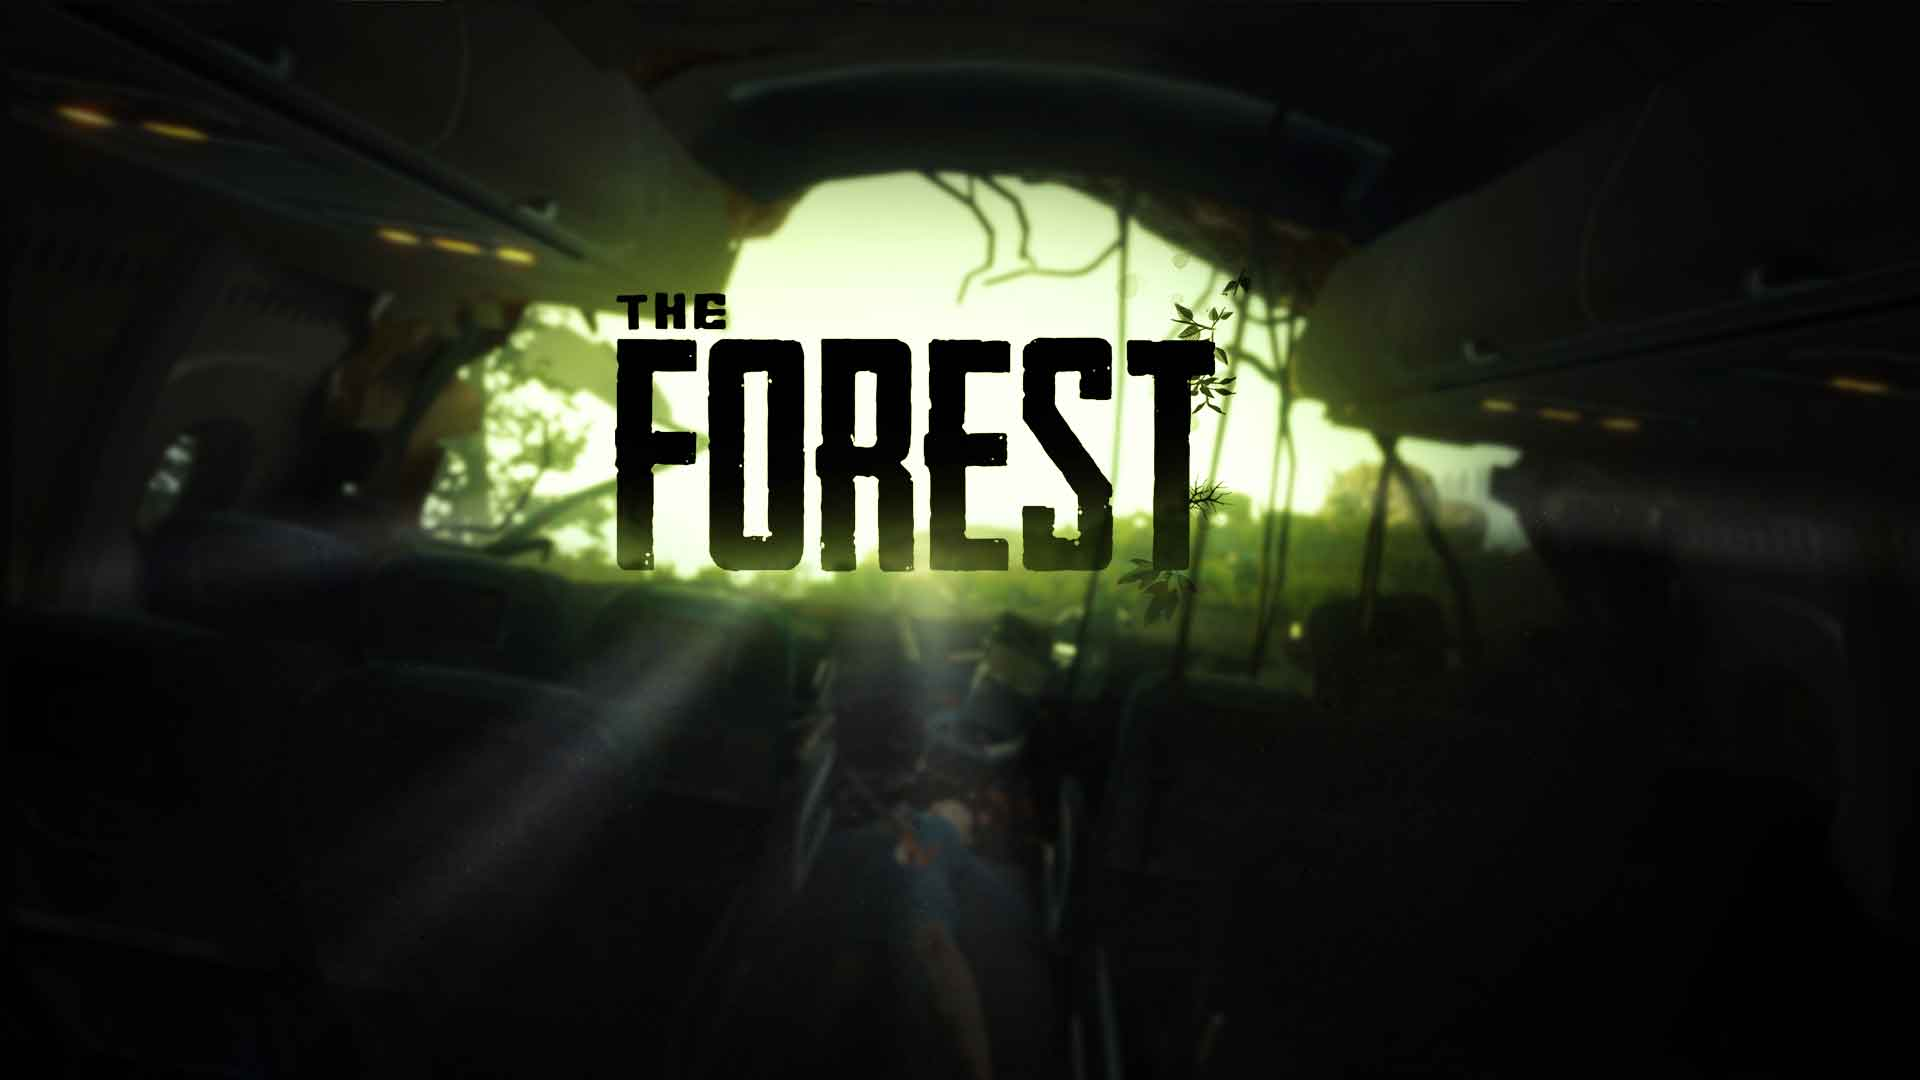 The Forest: How to find a son, or the eternal question of the game